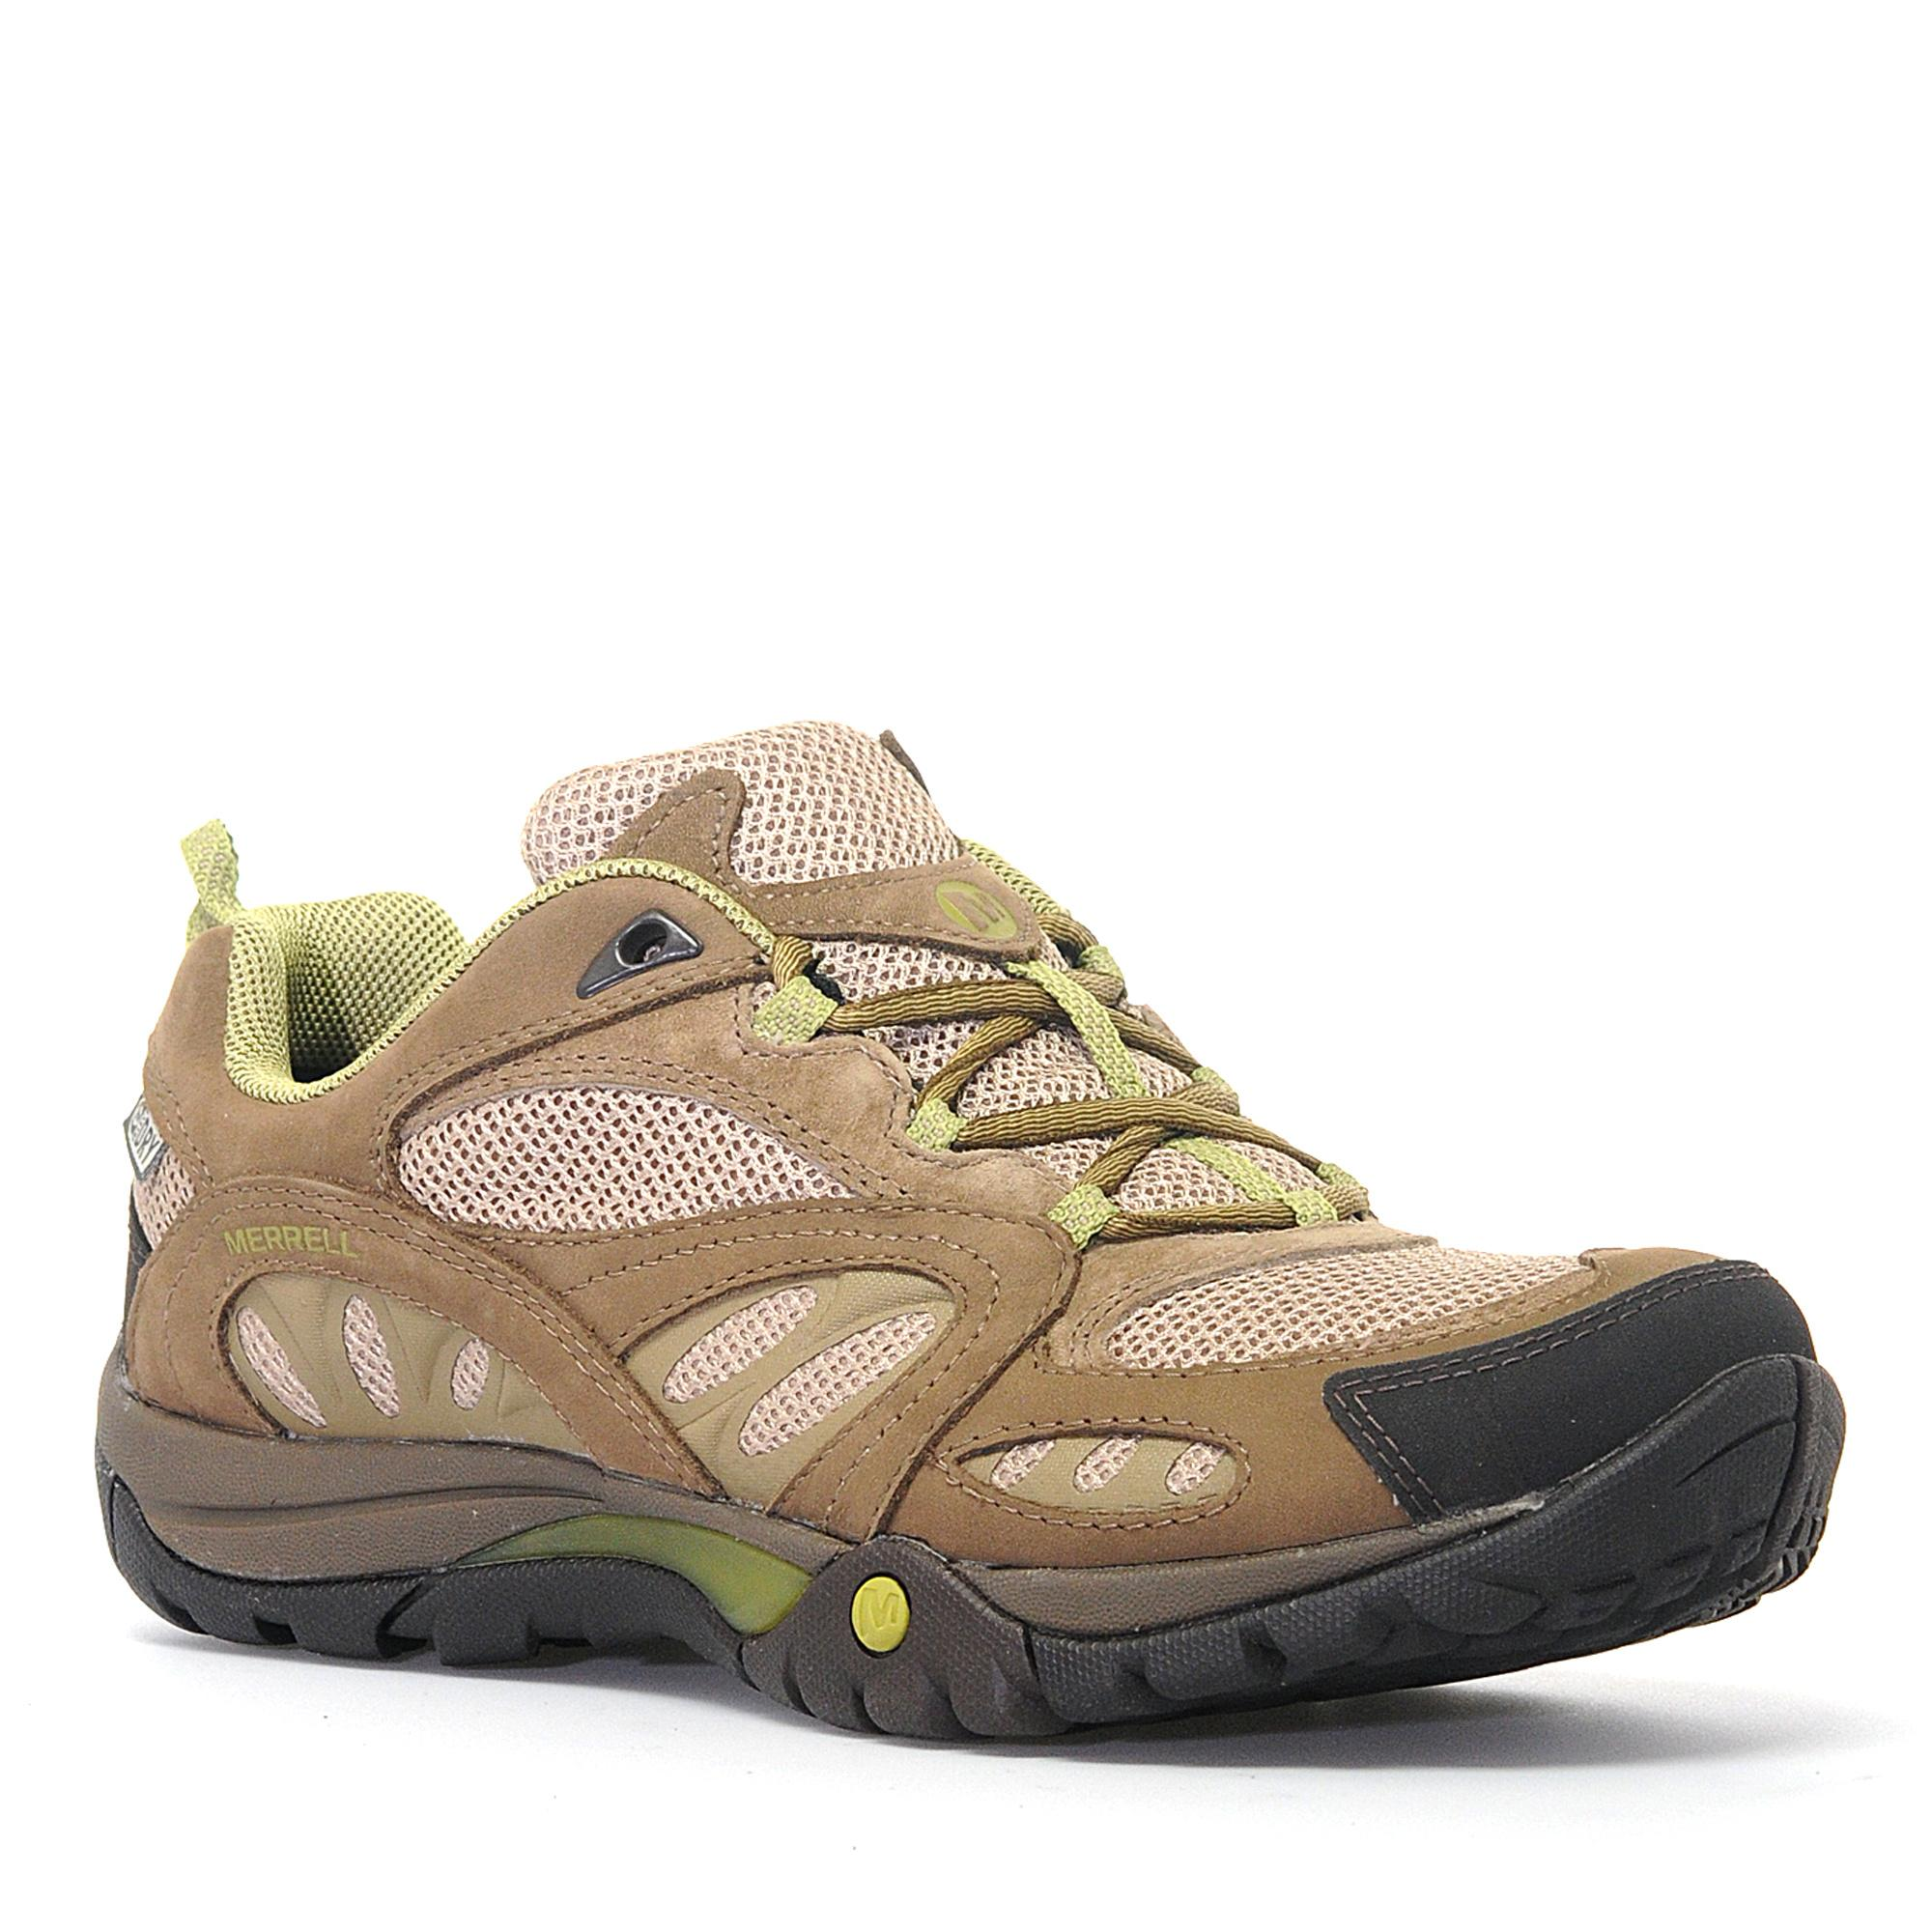 Millets Waterproof Women Hiking Shoe